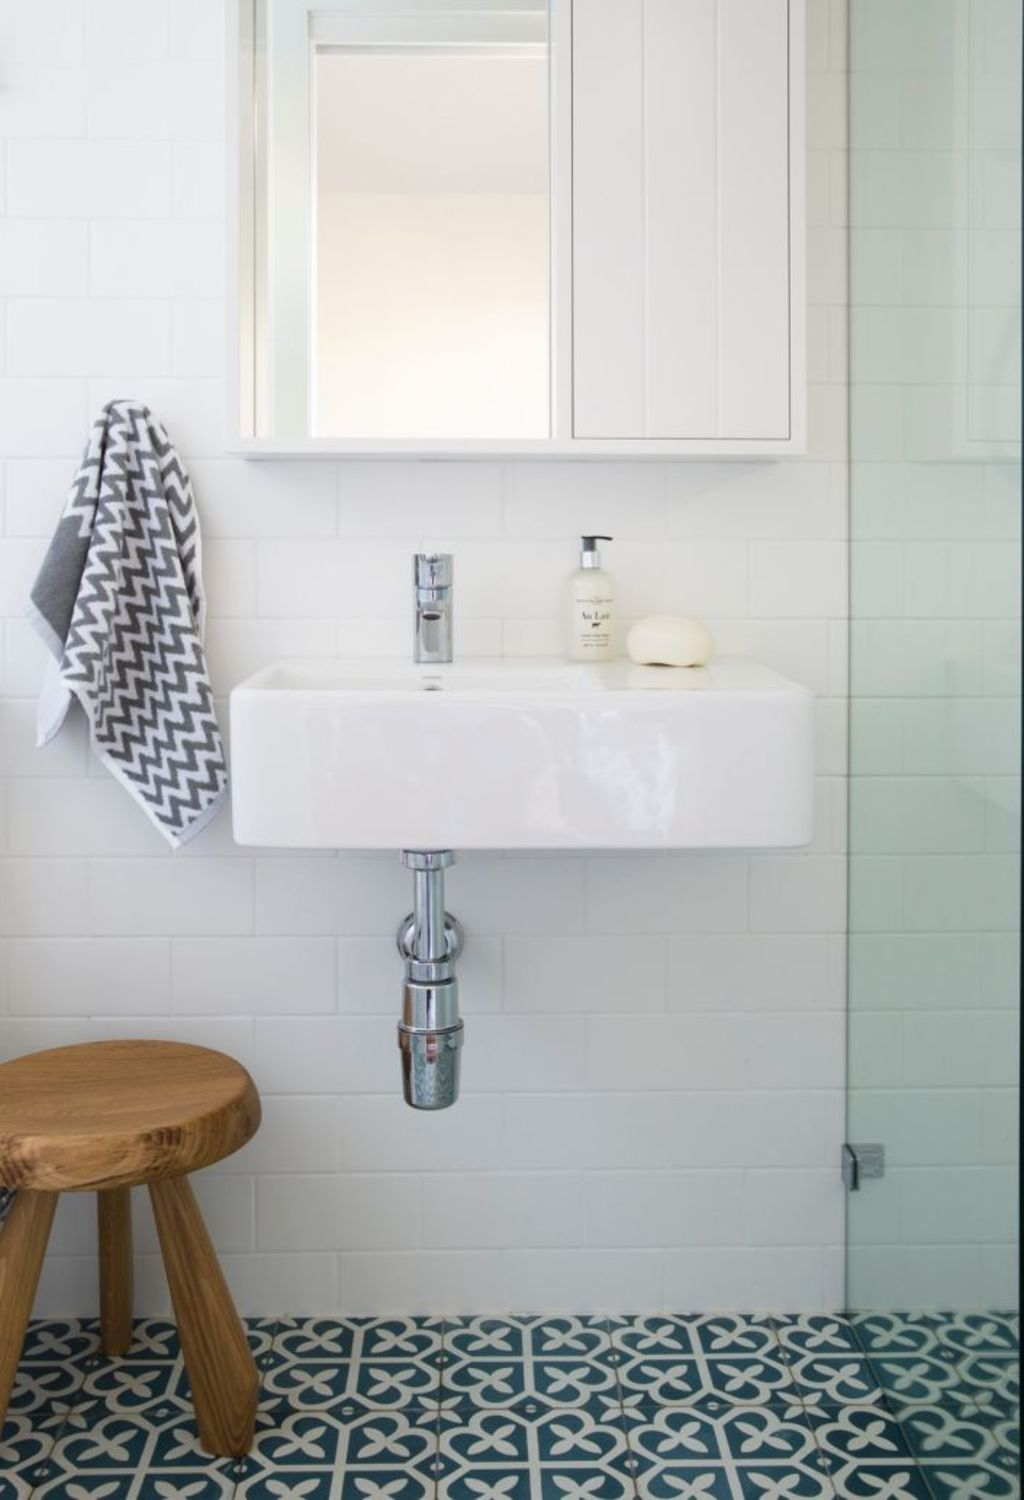 Painting tiles is a great alternative to ripping them out. Photo: Studio Gorman